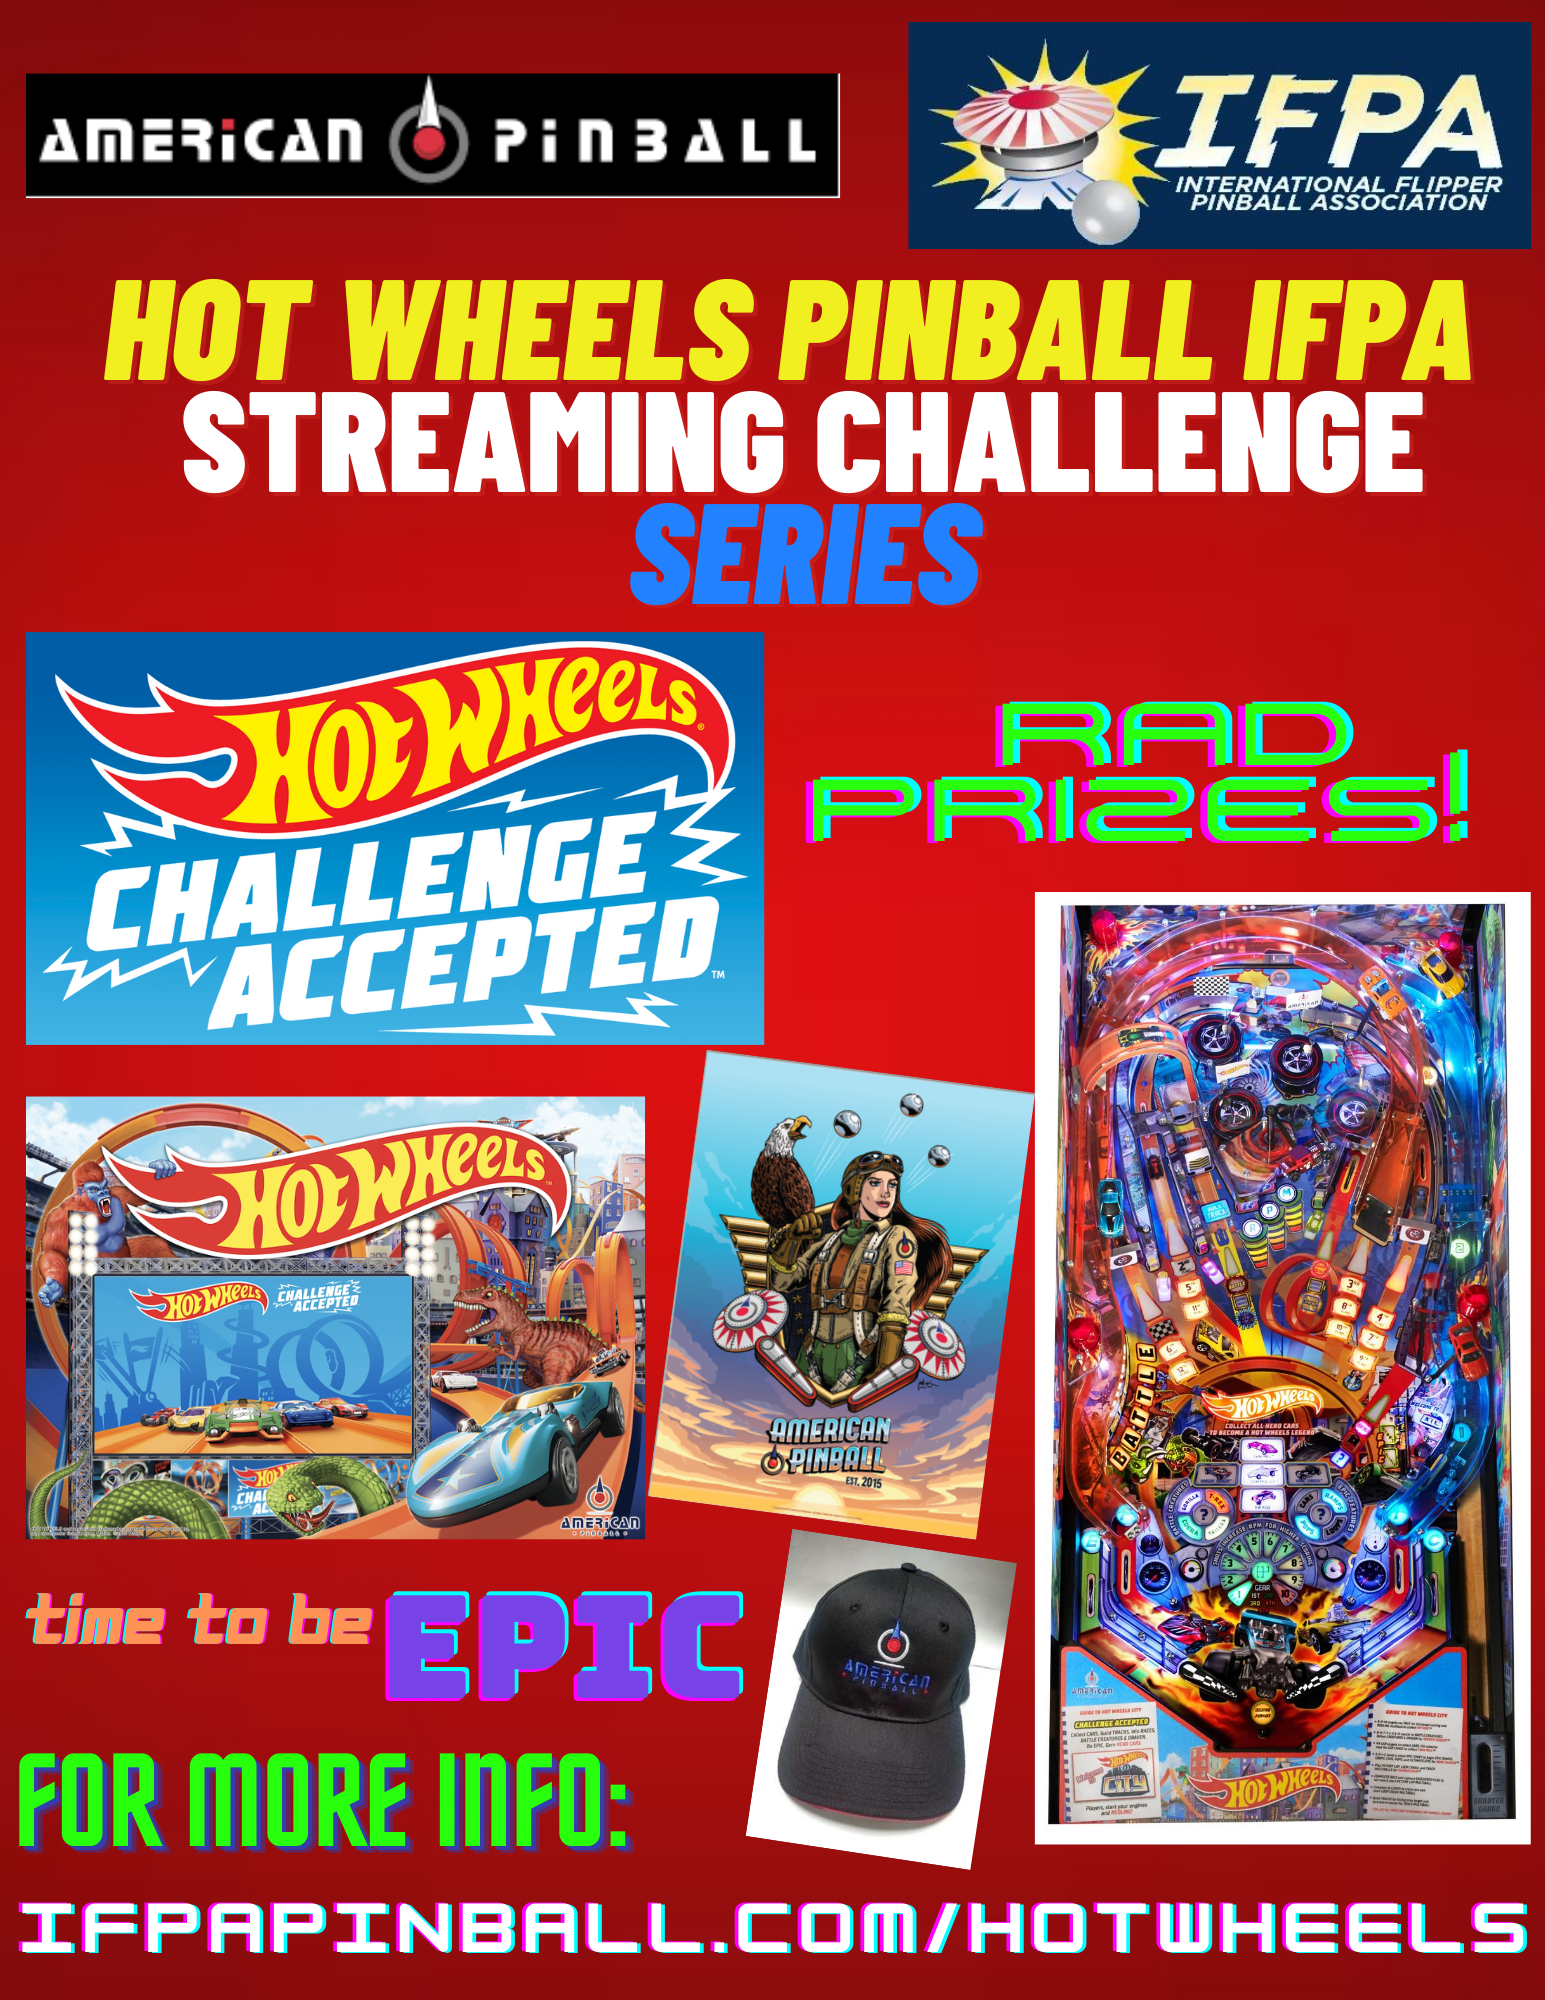 AP Teams Up with International Flipper Pinball Assoc. (IFPA) to Launch Hot Wheels Pinball IFPA Livestreaming Challenge Series